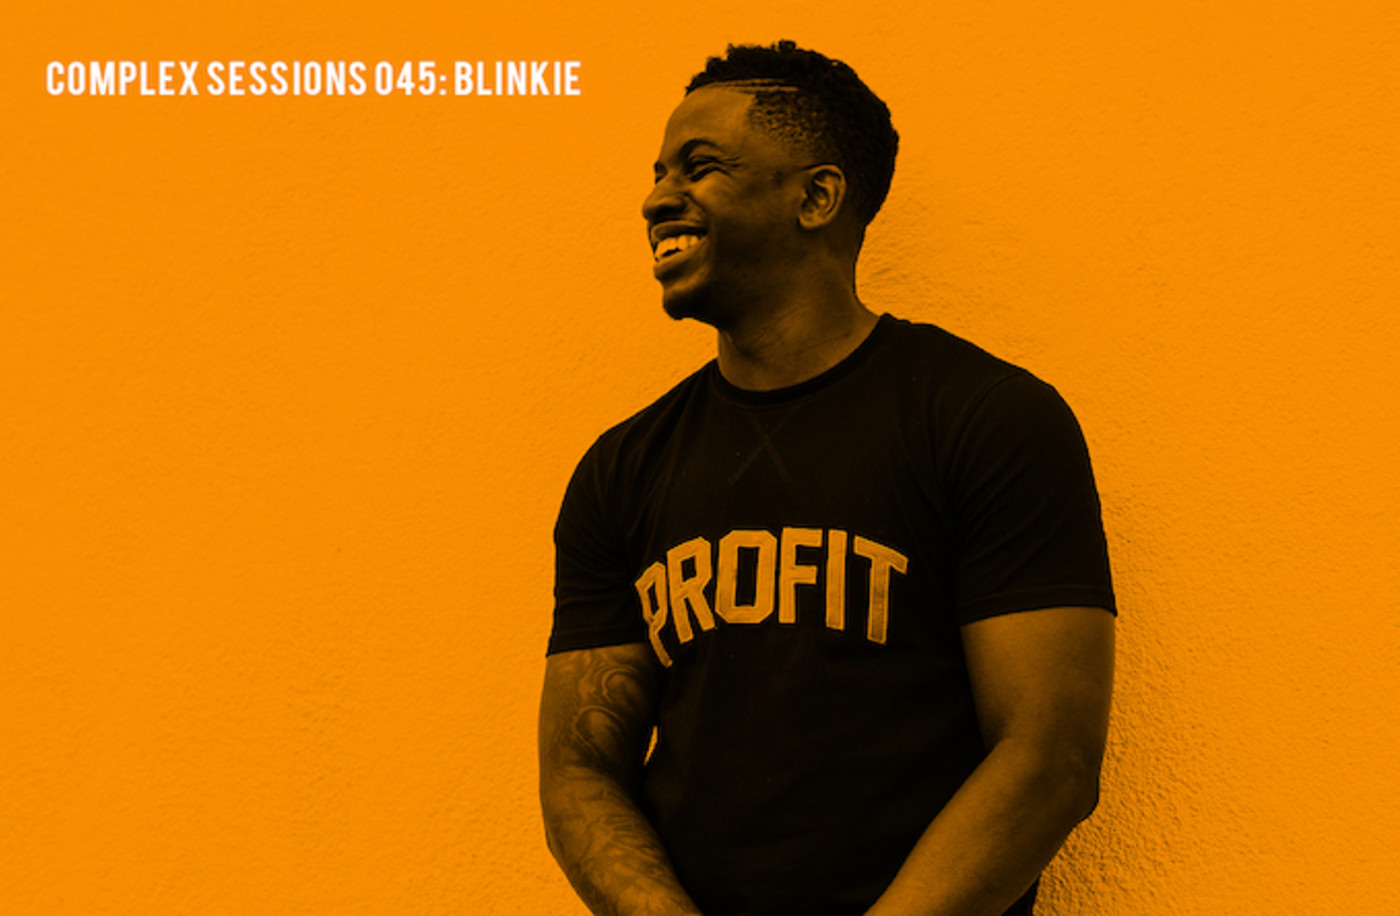 Complex Sessions 045: Blinkie